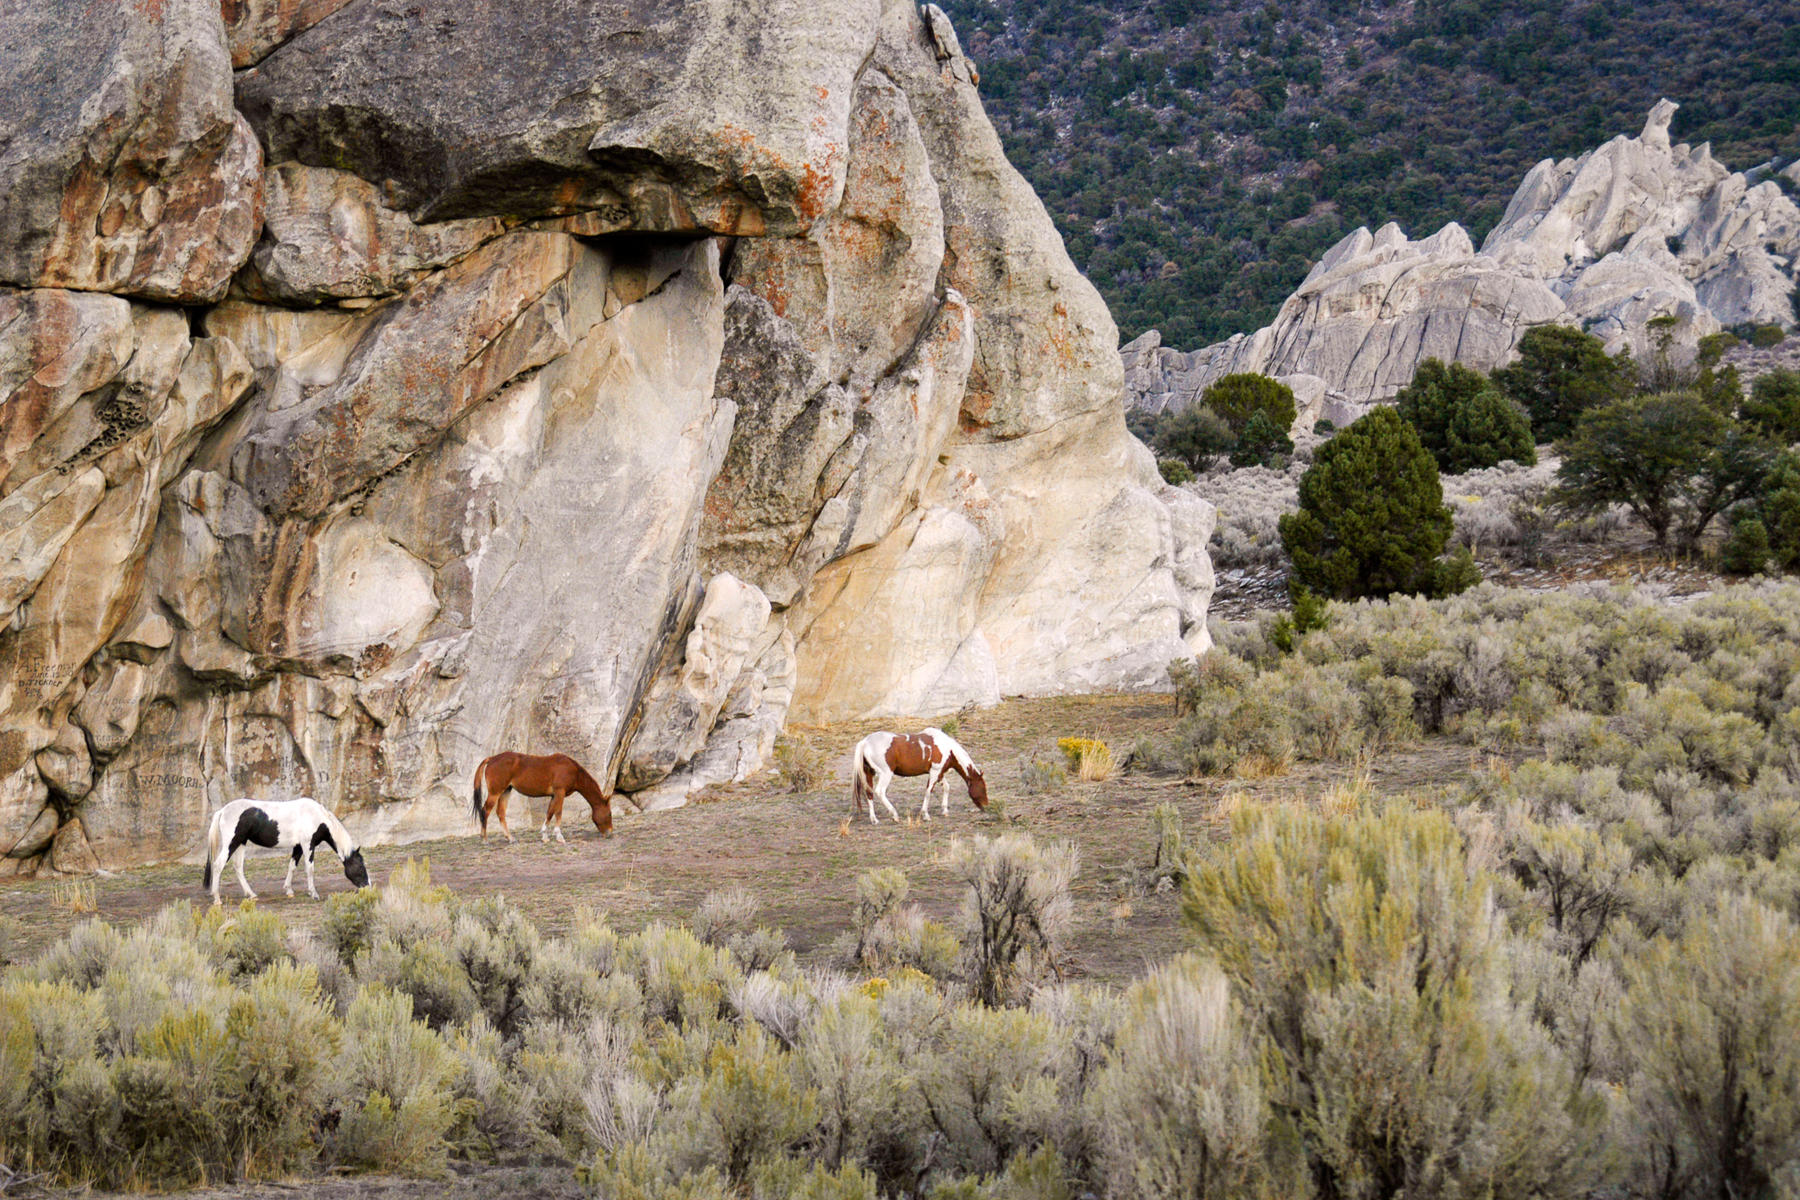 Wild Horses, City of Rocks, Idaho : equus et al : TIMOTHY FLOYD PHOTOGRAPHER, NATURE PHOTOGRAPHY, PHOTO ESSAYS, PHOTOJOURNALISM